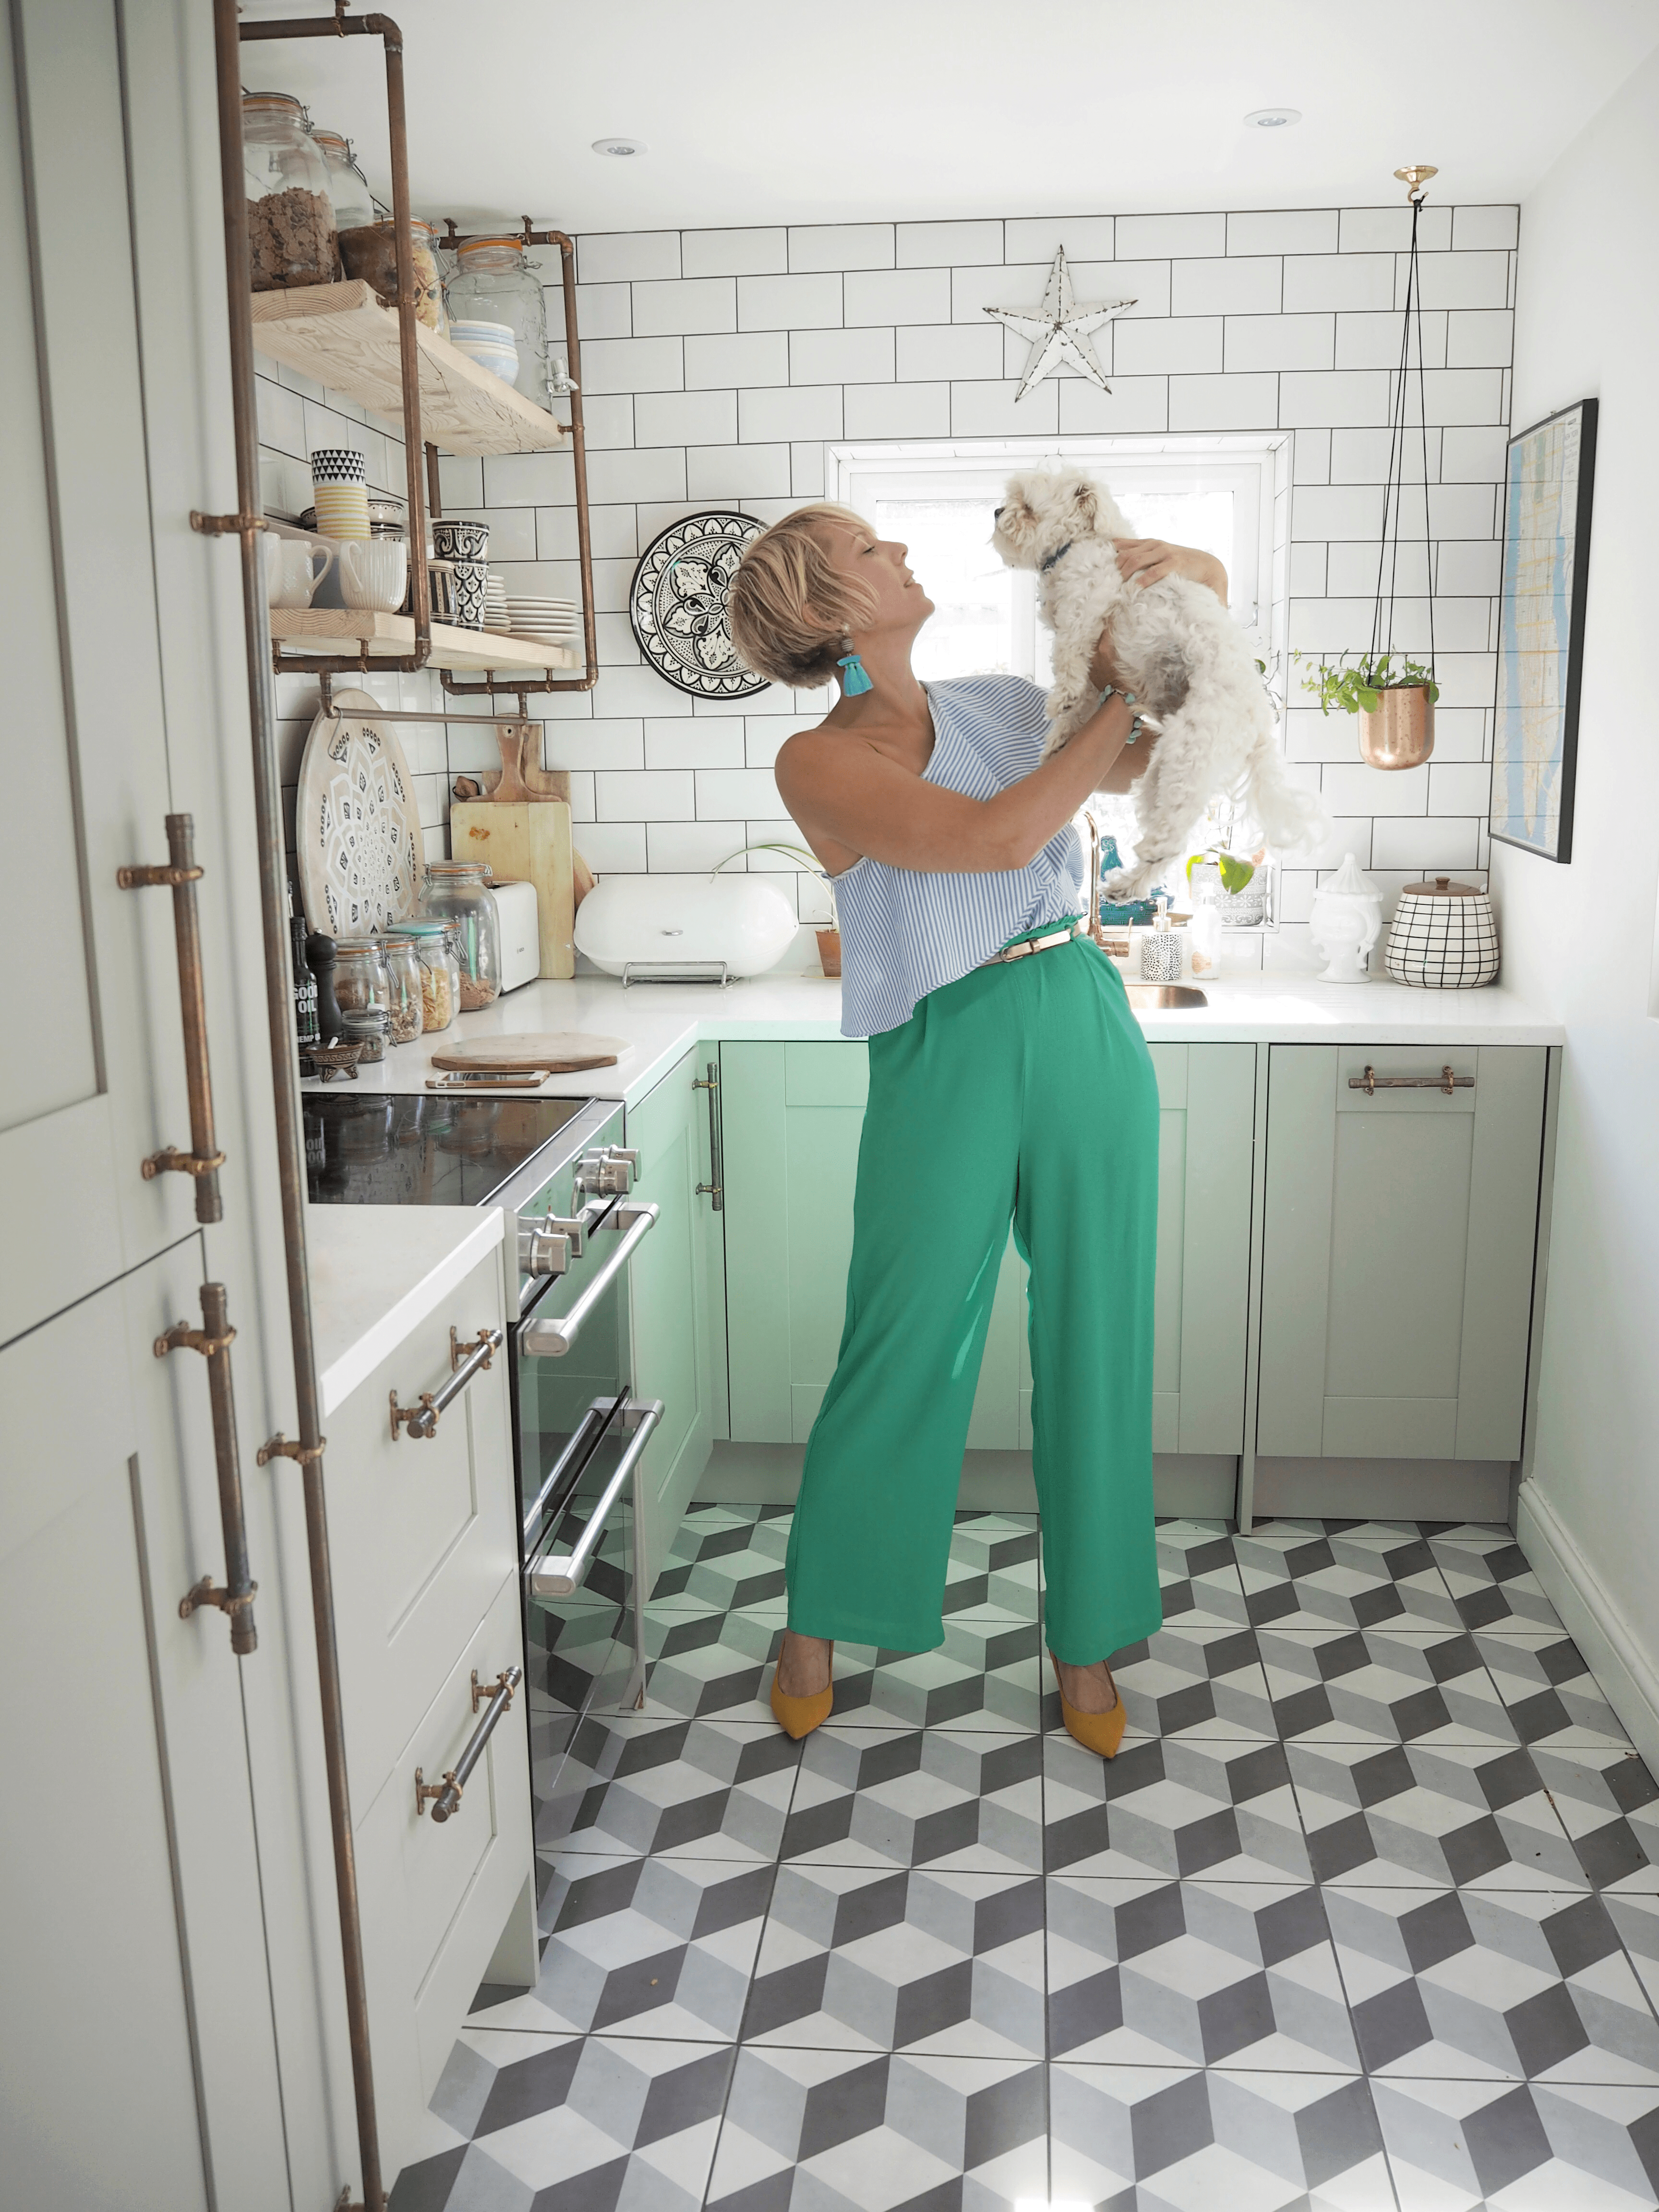 VOTE for We Love Home as 'Best Interior Lifestyle Blog' at the Amaram 2018 Awards (deadline September 19th) and you may WIN a Leica camera.